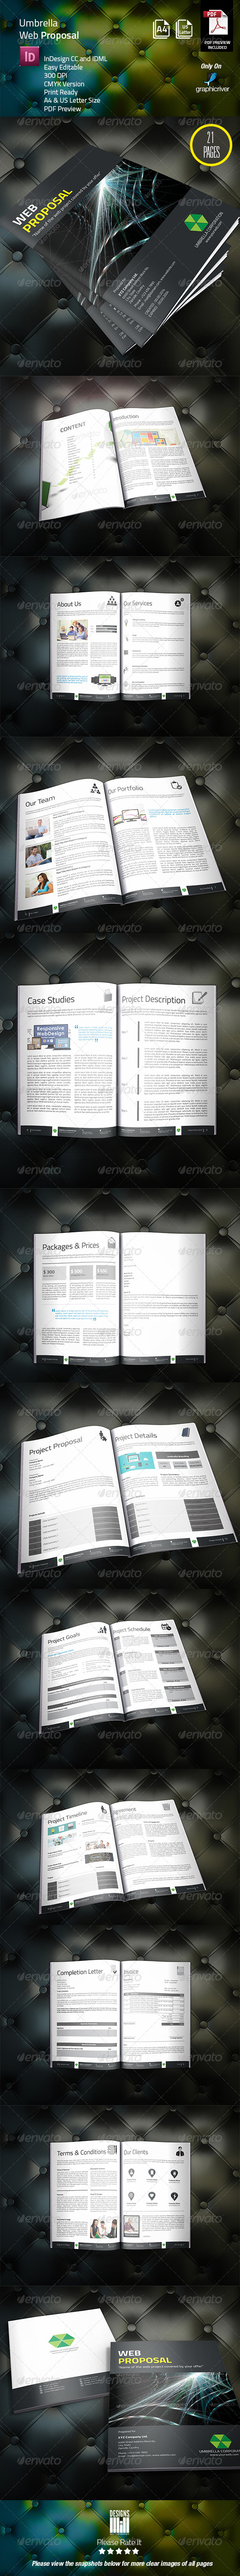 GraphicRiver Umbrella Web Proposal 8314999